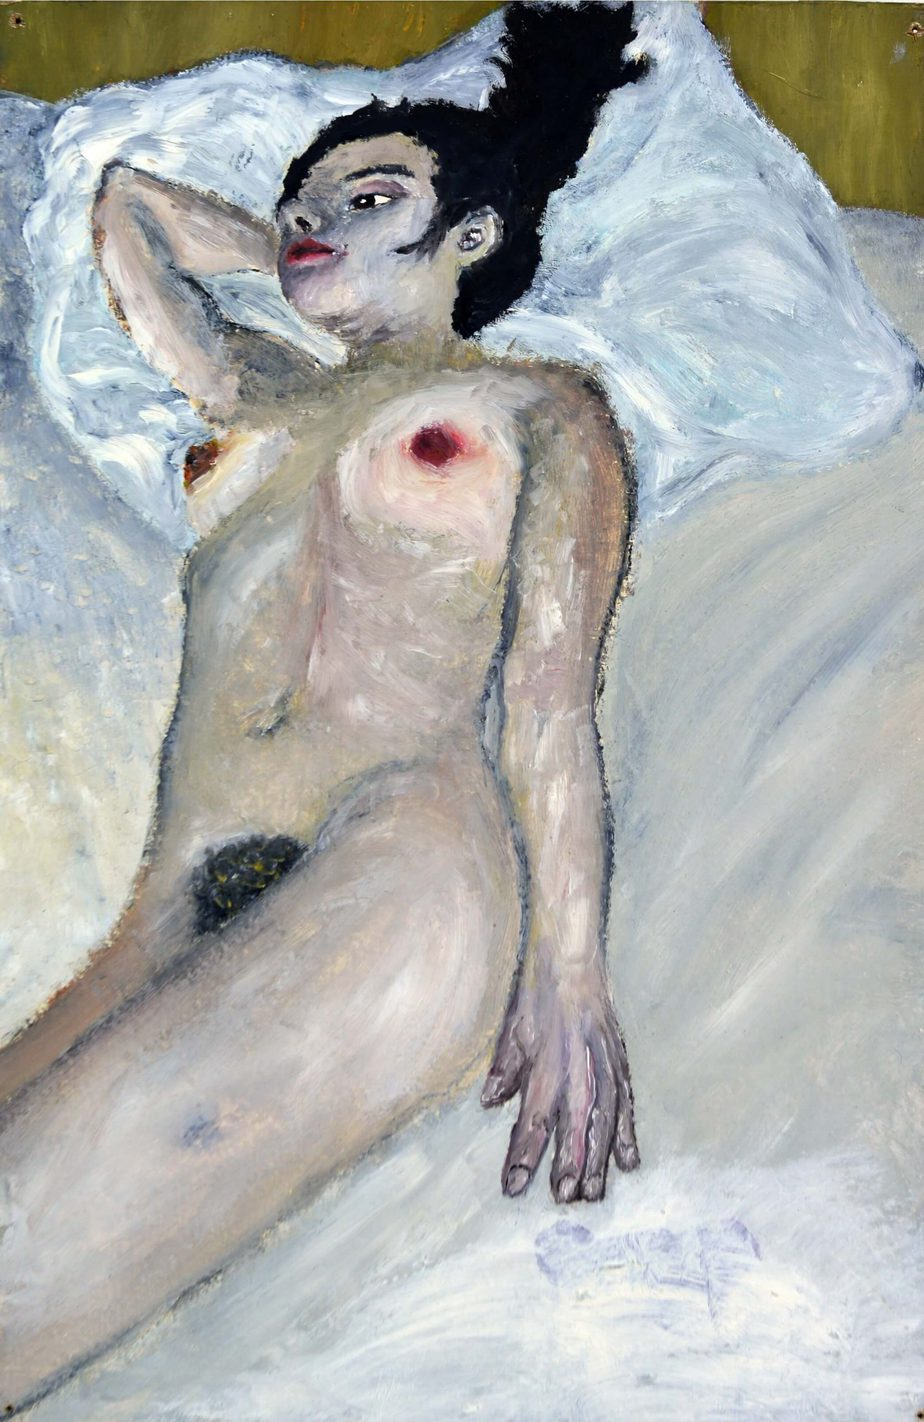 Grit Hachmeister (b. 1979) Heike on bed, 2006 Painting on wood 20 x 38 cm